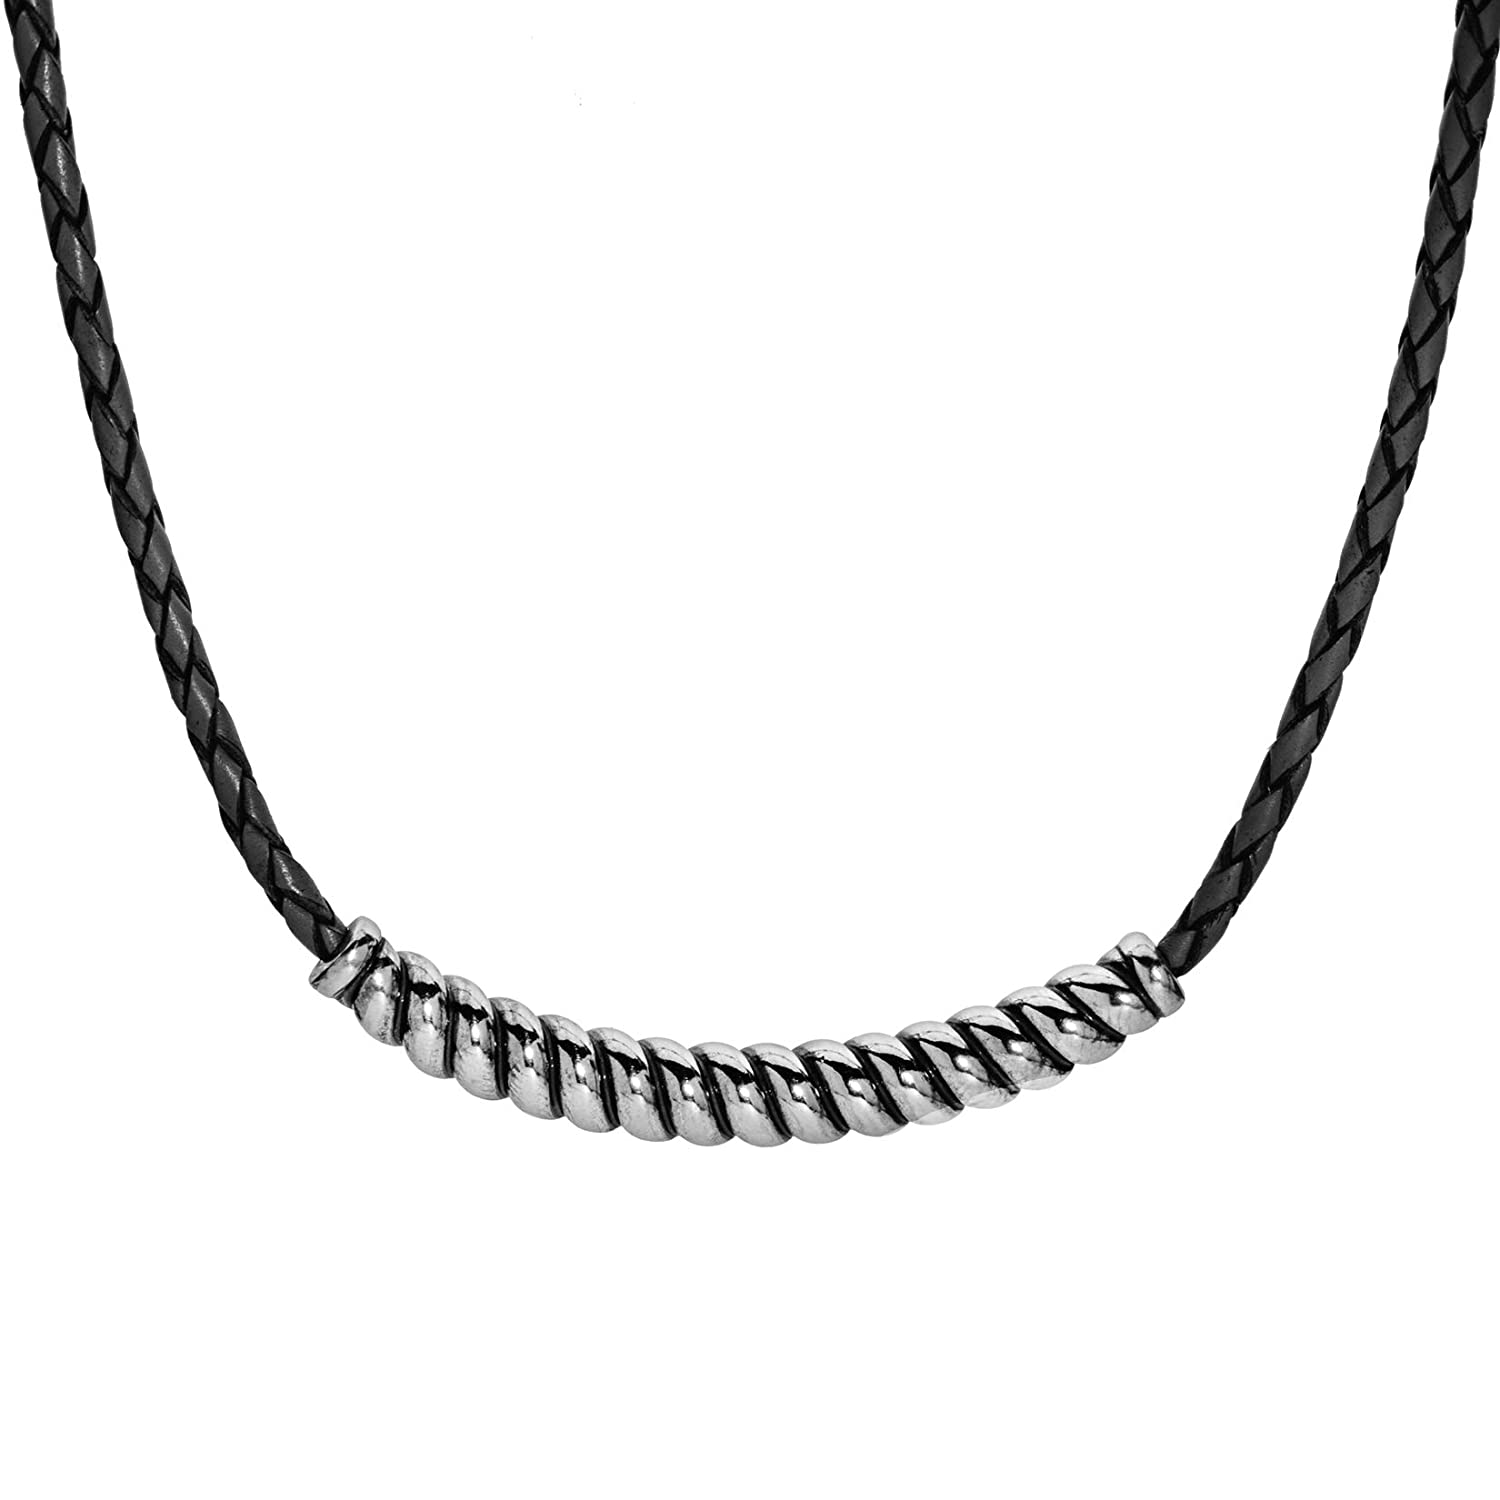 925 sterling silver choker necklace with ebony wood elements